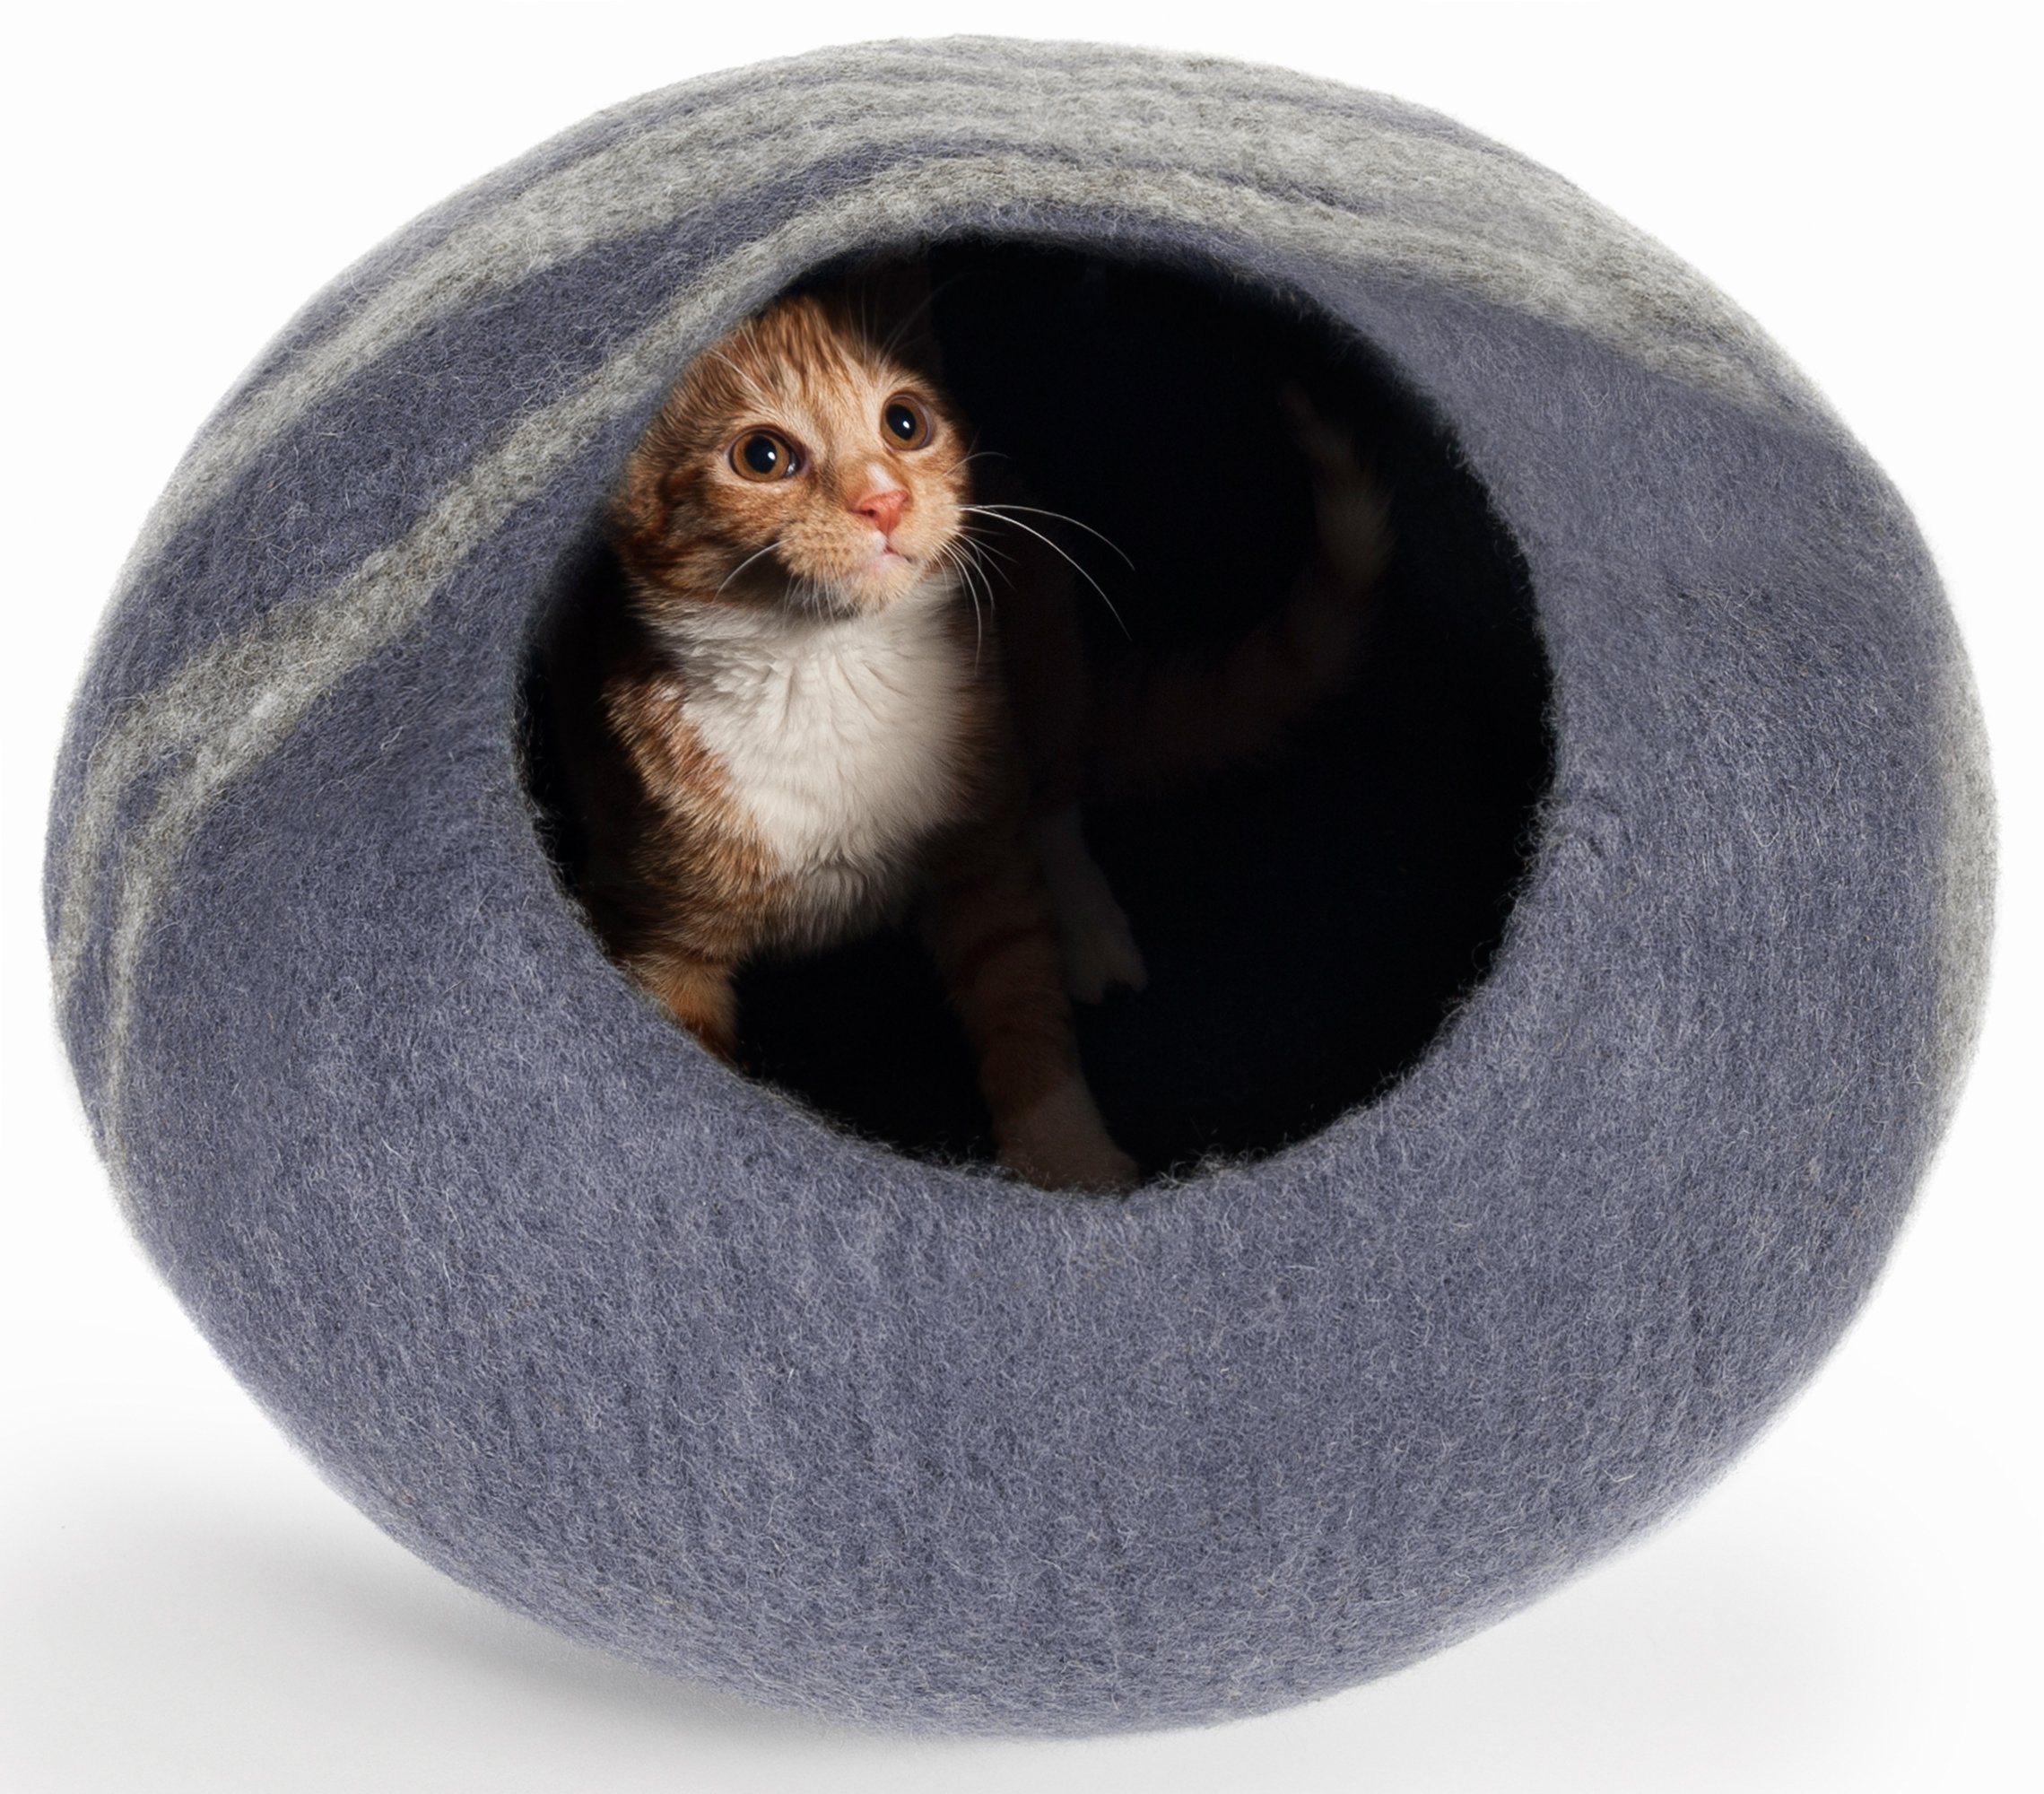 Twin Critters - Handcrafted Cat Cave Bed (Large) I Ecofriendly Cat Cave I Felted from 100% Natural Merino Wool I Handmade Pod for Cats and Kittens I Warm and cozy cat bed (Slate Grey) by Twin Critters